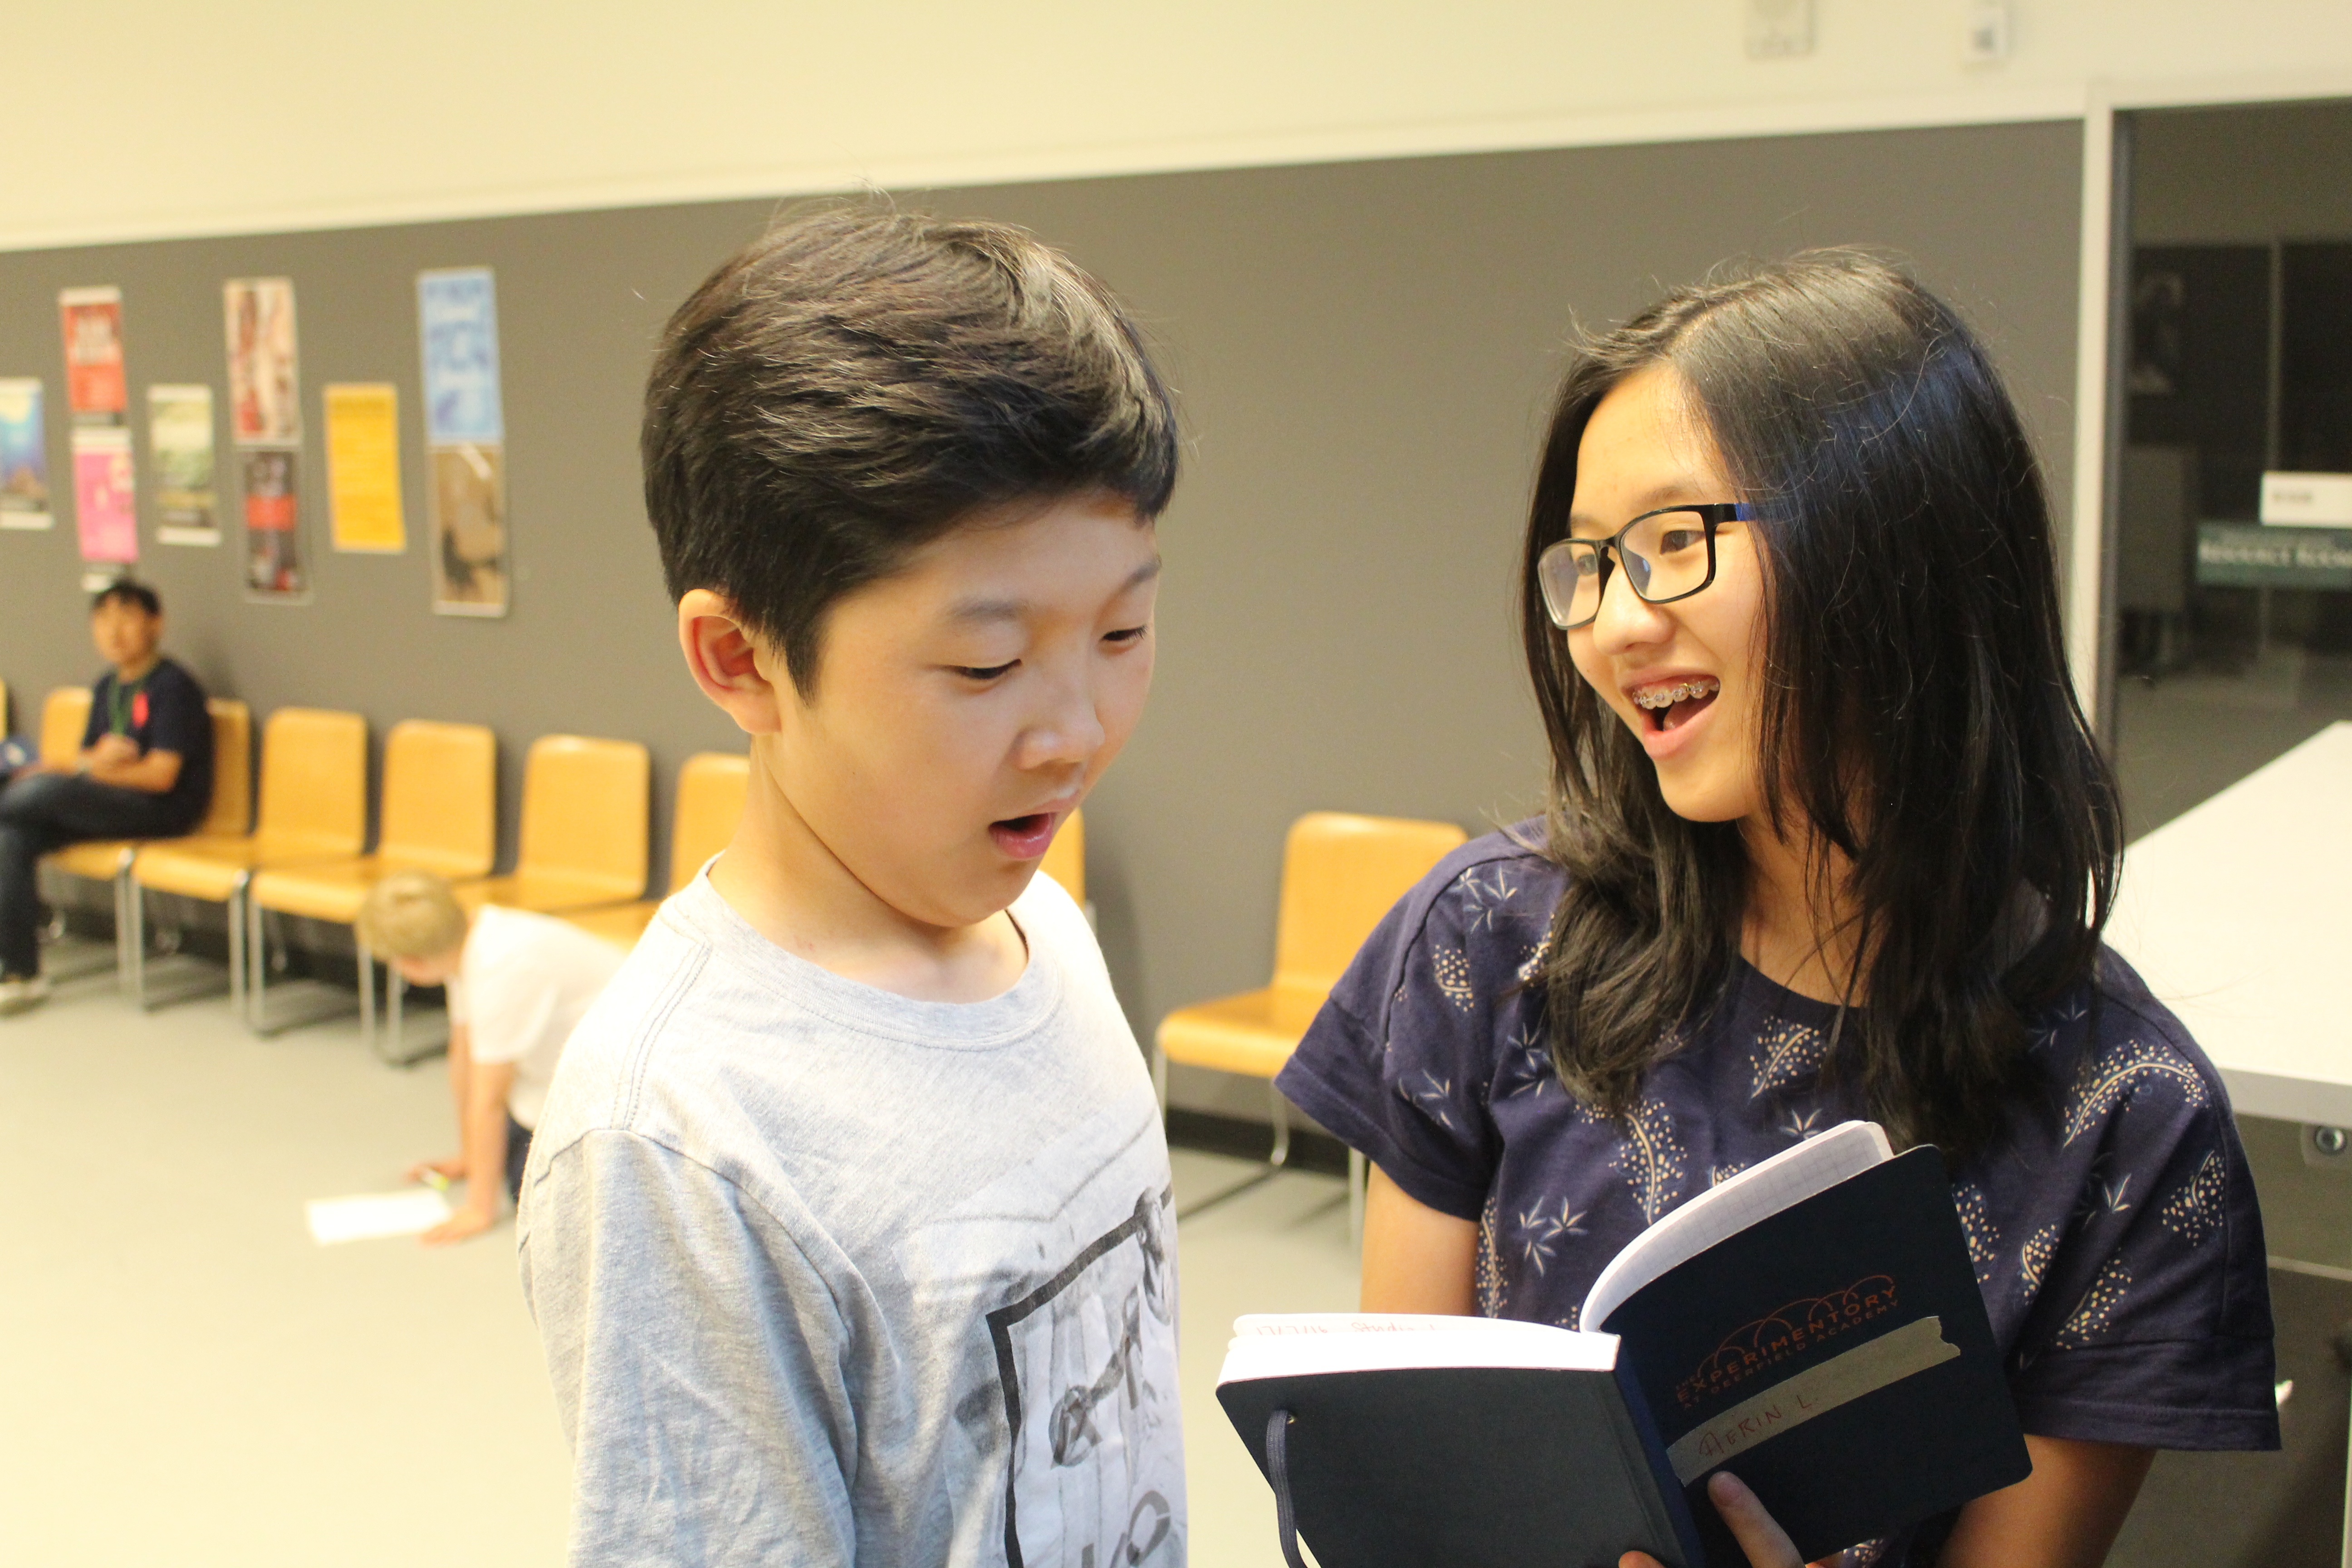 William and Aerin recite their lines for Communications class.